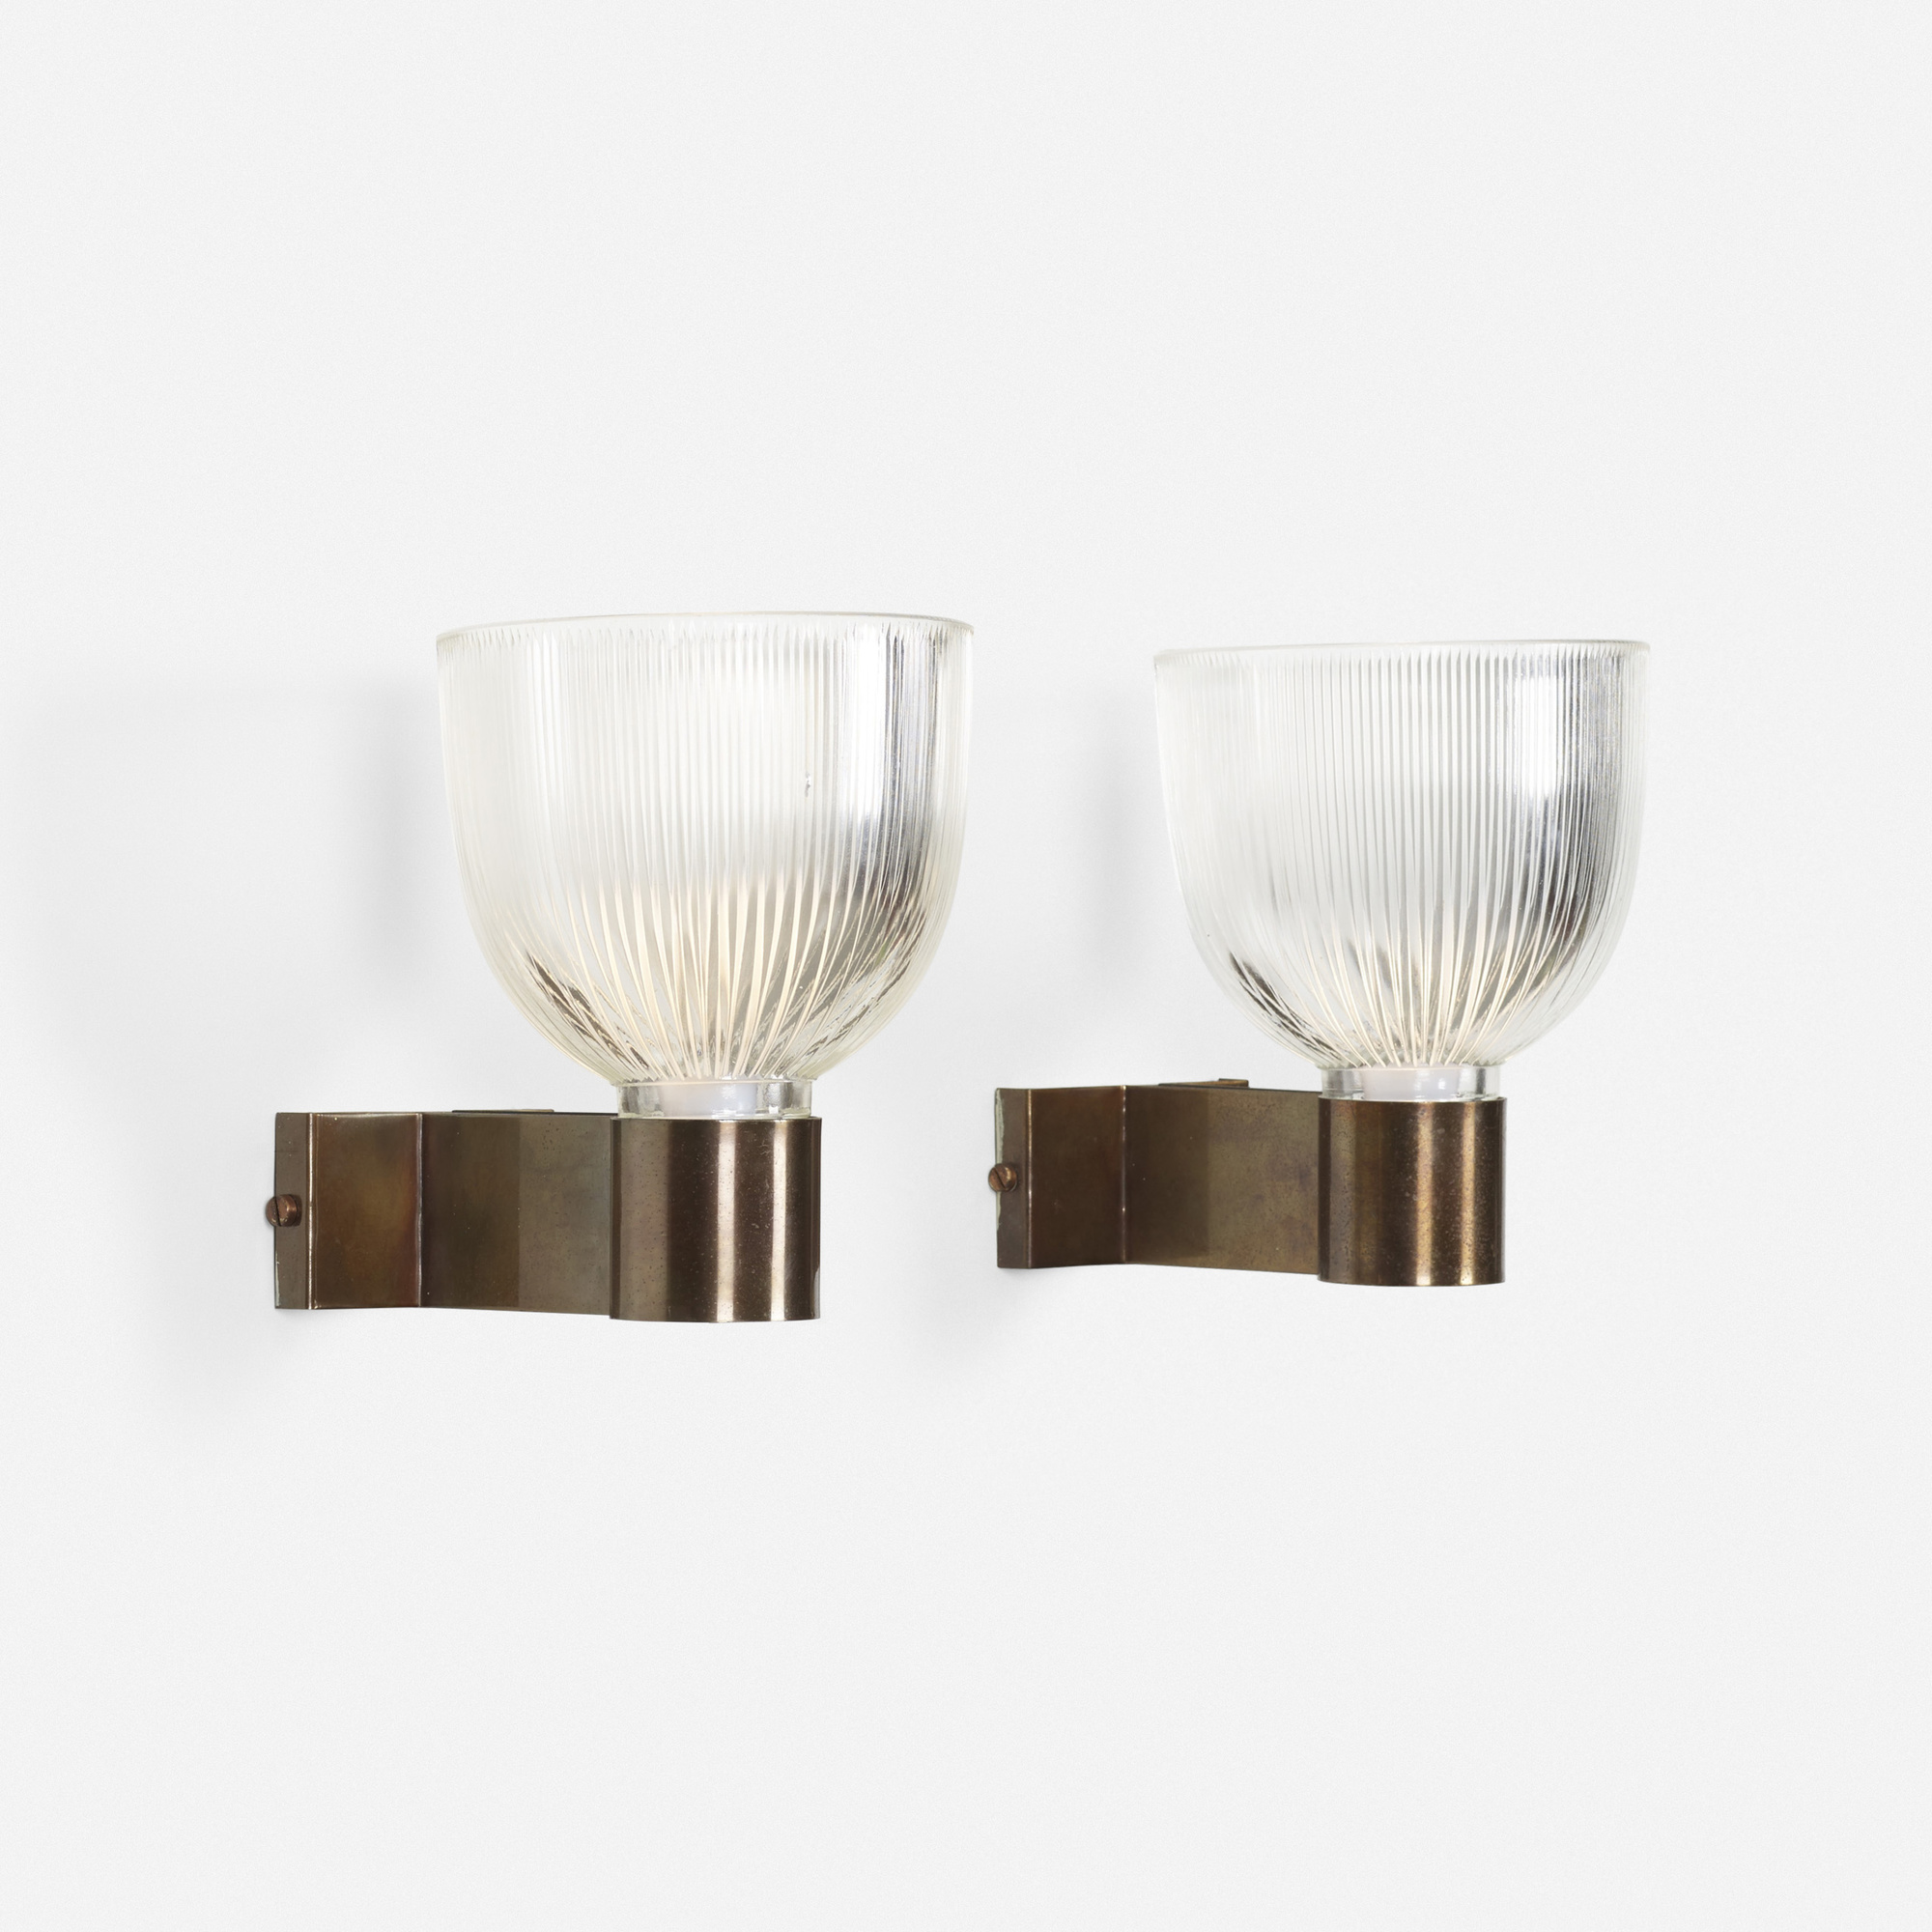 127: Italian / sconces, pair (1 of 1)